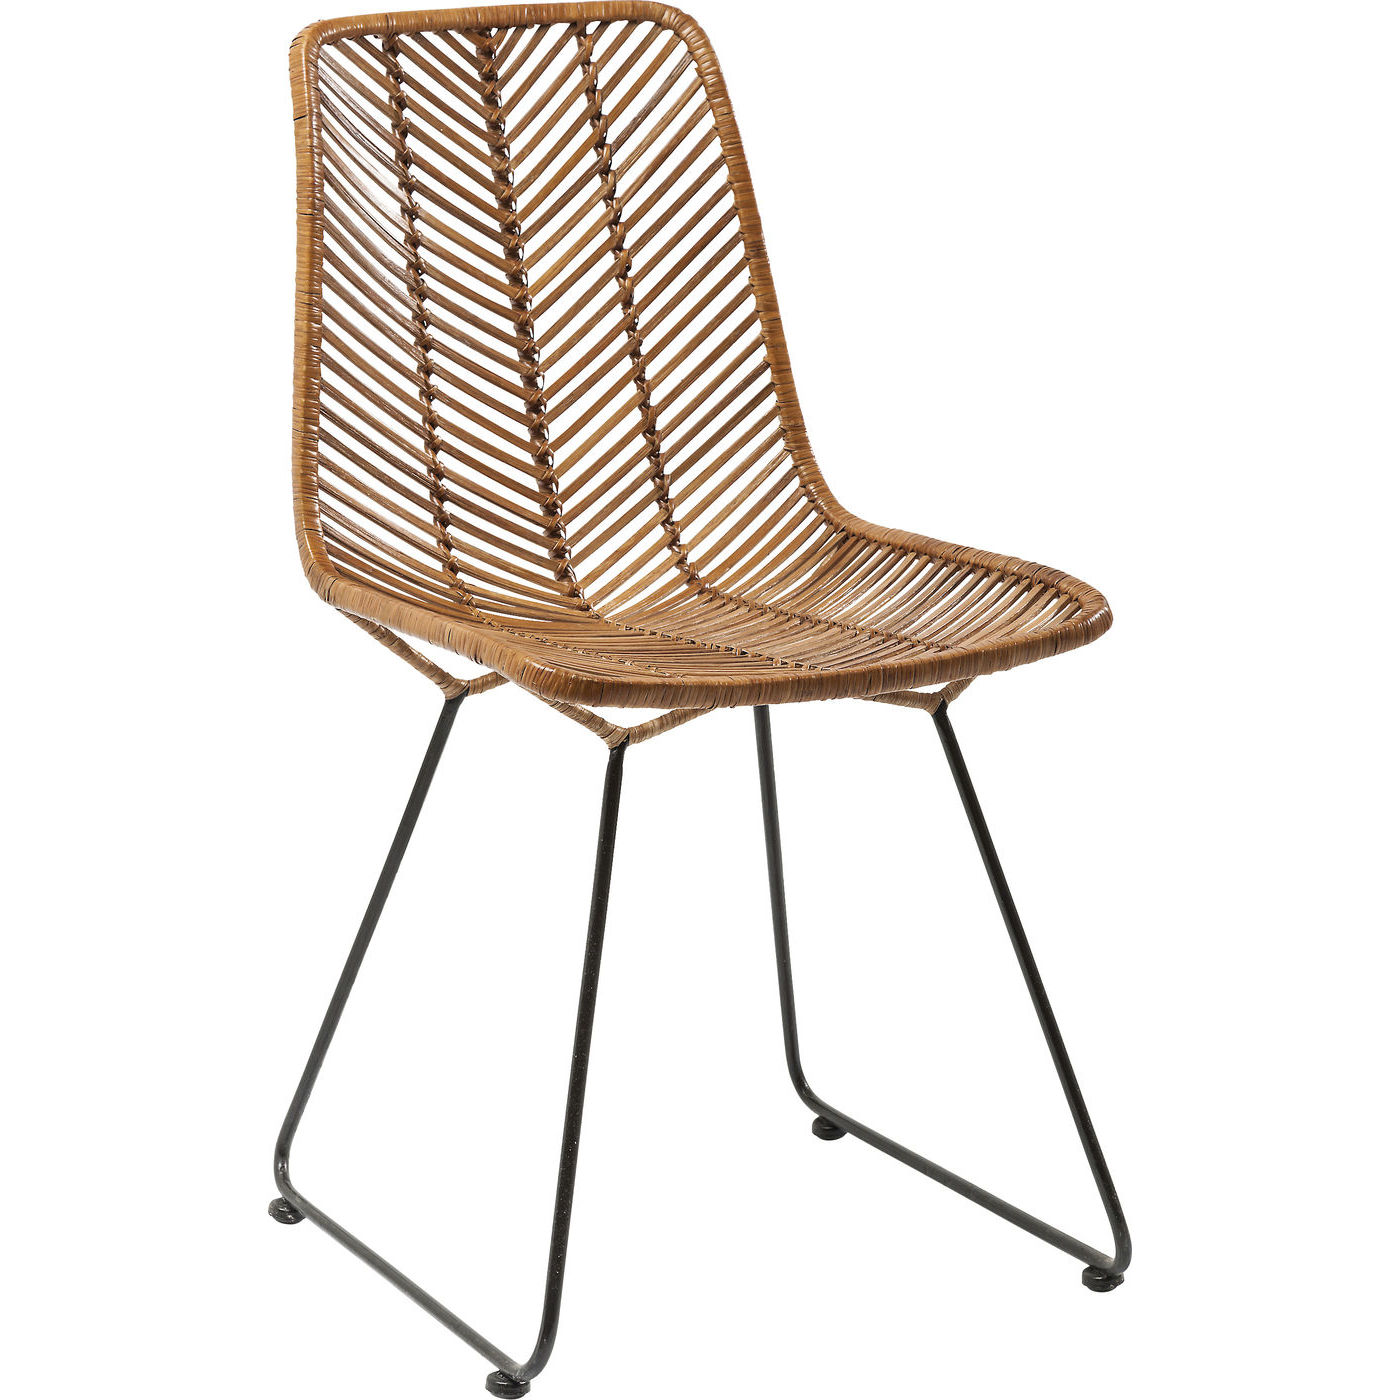 Kare design 2er set stuhl ko lanta rattan braun for Design stuhl